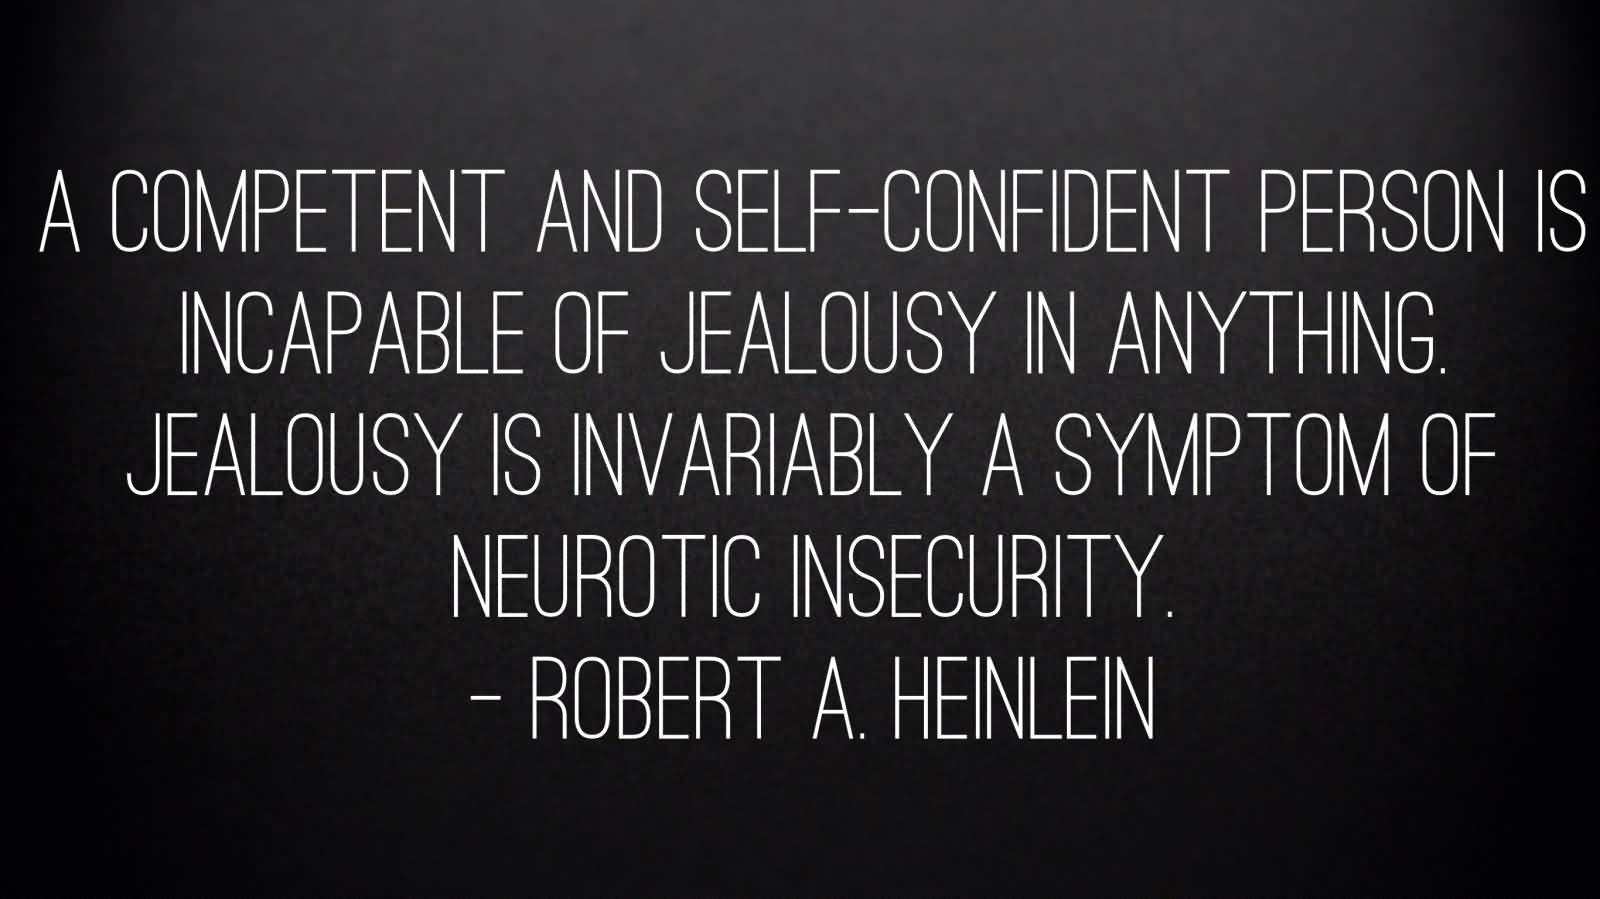 A competent and self confident person is incapable of jealousy in anything. Jealousy is invariably a symptom of neurotic insecurity. Robert A. Heinlein